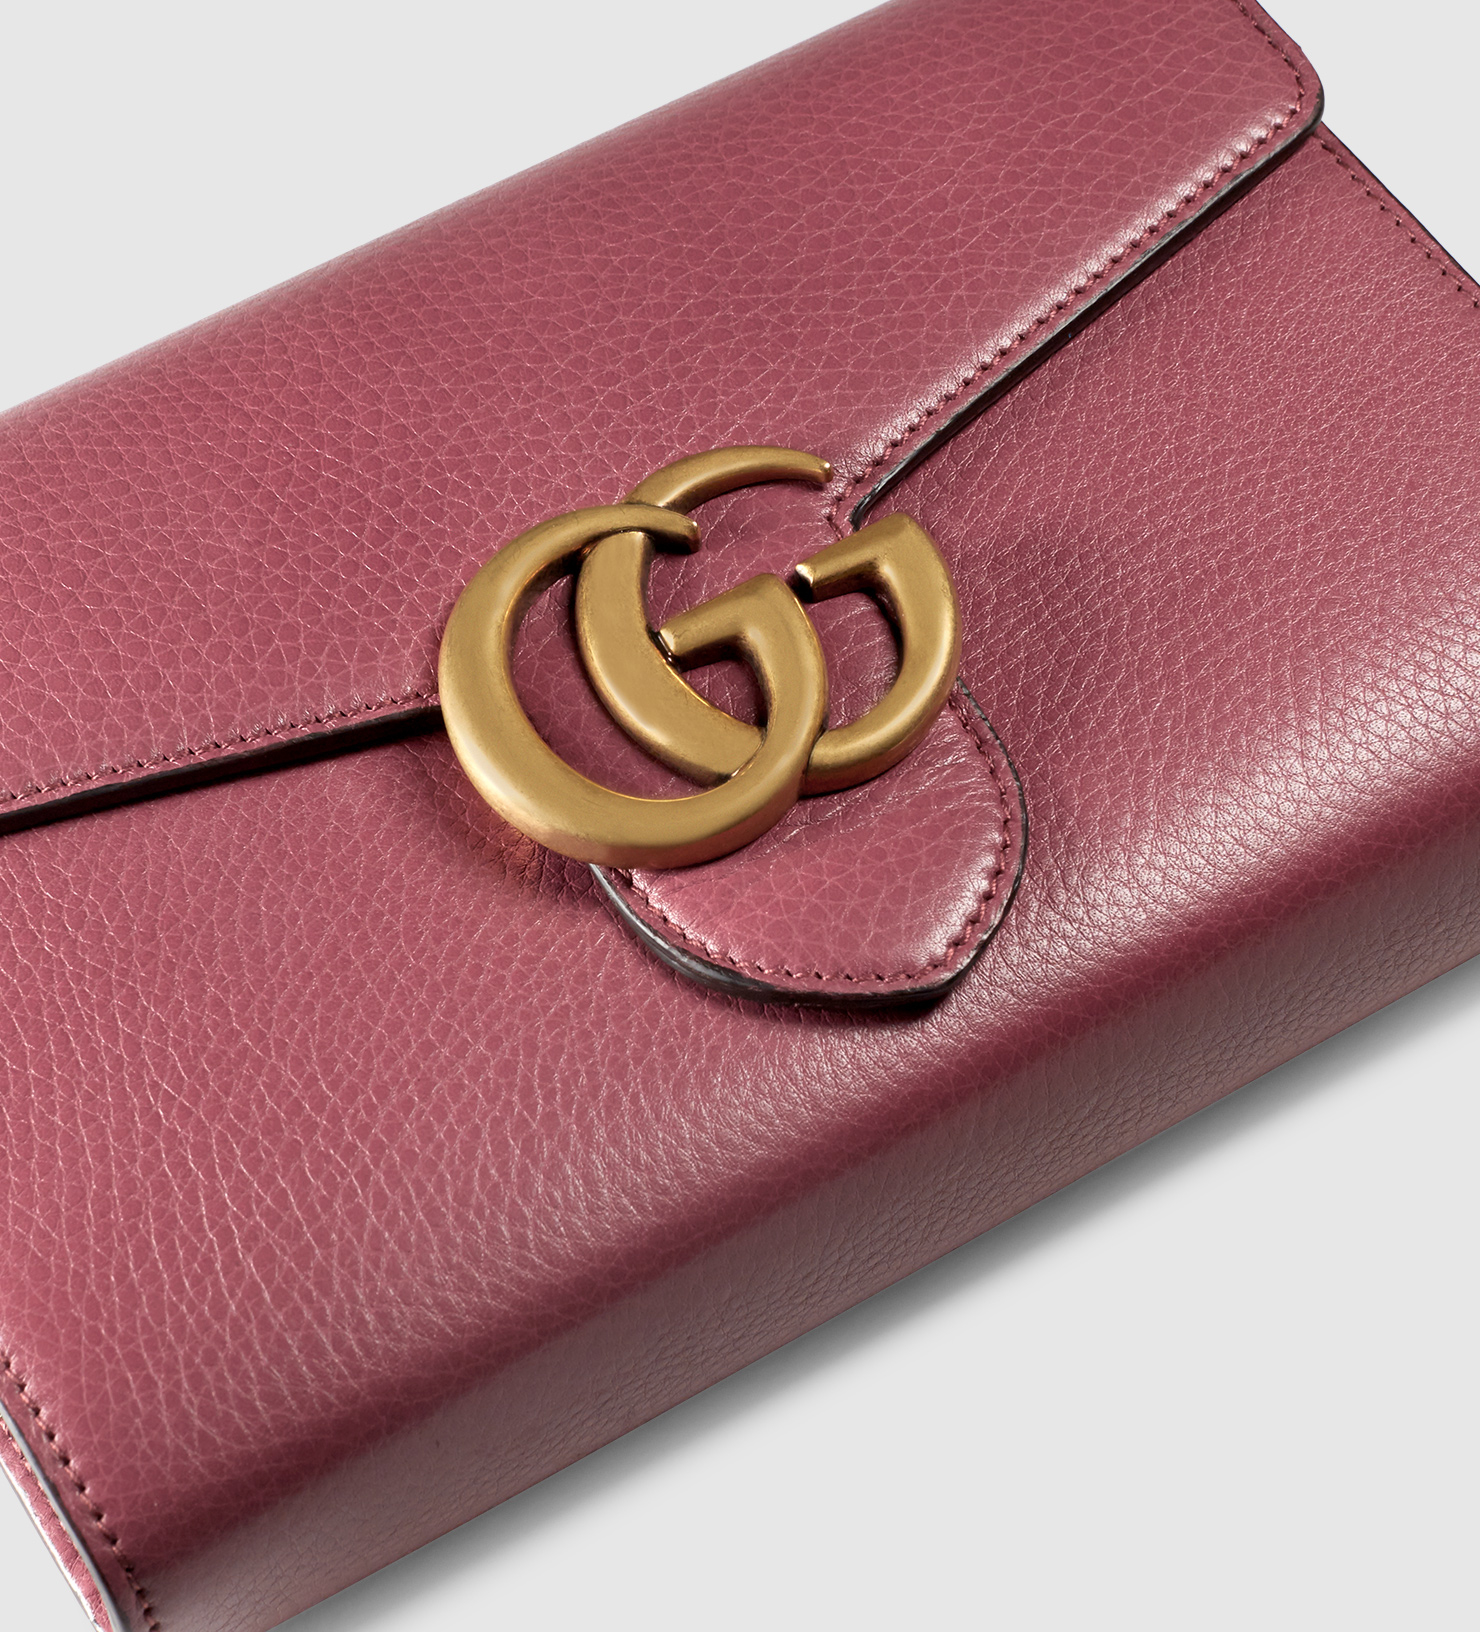 8f2b9f4693d Lyst - Gucci Gg Marmont Leather Chain Wallet in Purple